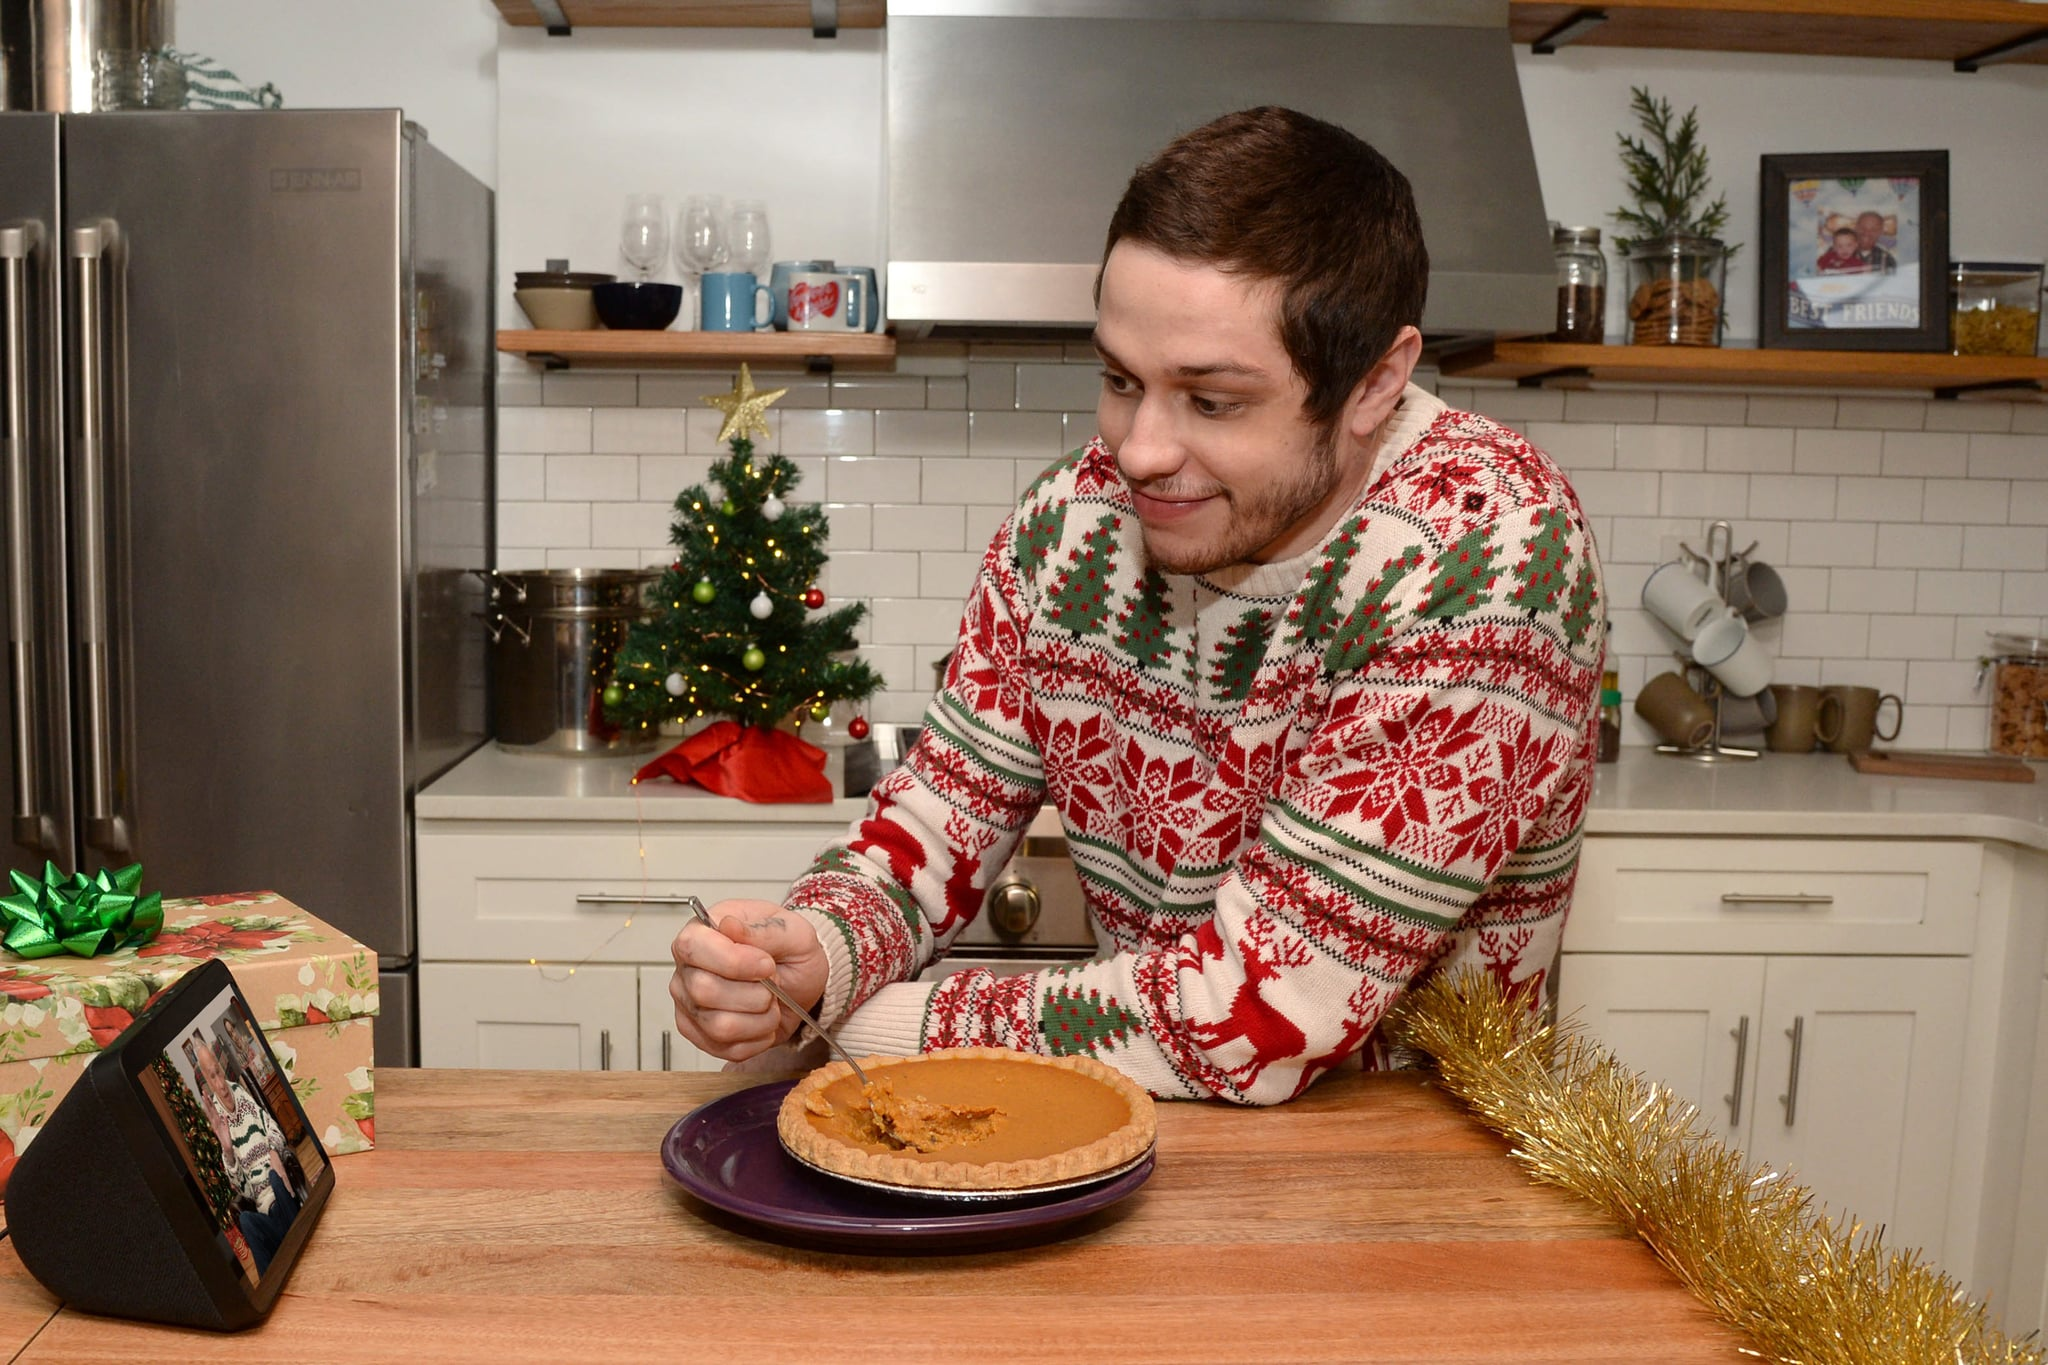 - New York, NY - 12/15/2020 - Pete Davidson and grandfather, Stephen `Poppy` Davidson, stay connected this holiday season using the Amazon Echo Show.-PICTURED: Pete Davidson-PHOTO by: Michael Simon/startraksphoto.com-MS149668Editorial - Rights Managed Image - Please contact www.startraksphoto.com for licensing fee Startraks PhotoStartraks PhotoNew York, NY For licensing please call 212-414-9464 or email sales@startraksphoto.comImage may not be published in any way that is or might be deemed defamatory, libelous, pornographic, or obscene. Please consult our sales department for any clarification or question you may haveStartraks Photo reserves the right to pursue unauthorized users of this image. If you violate our intellectual property you may be liable for actual damages, loss of income, and profits you derive from the use of this image, and where appropriate, the cost of collection and/or statutory damages.